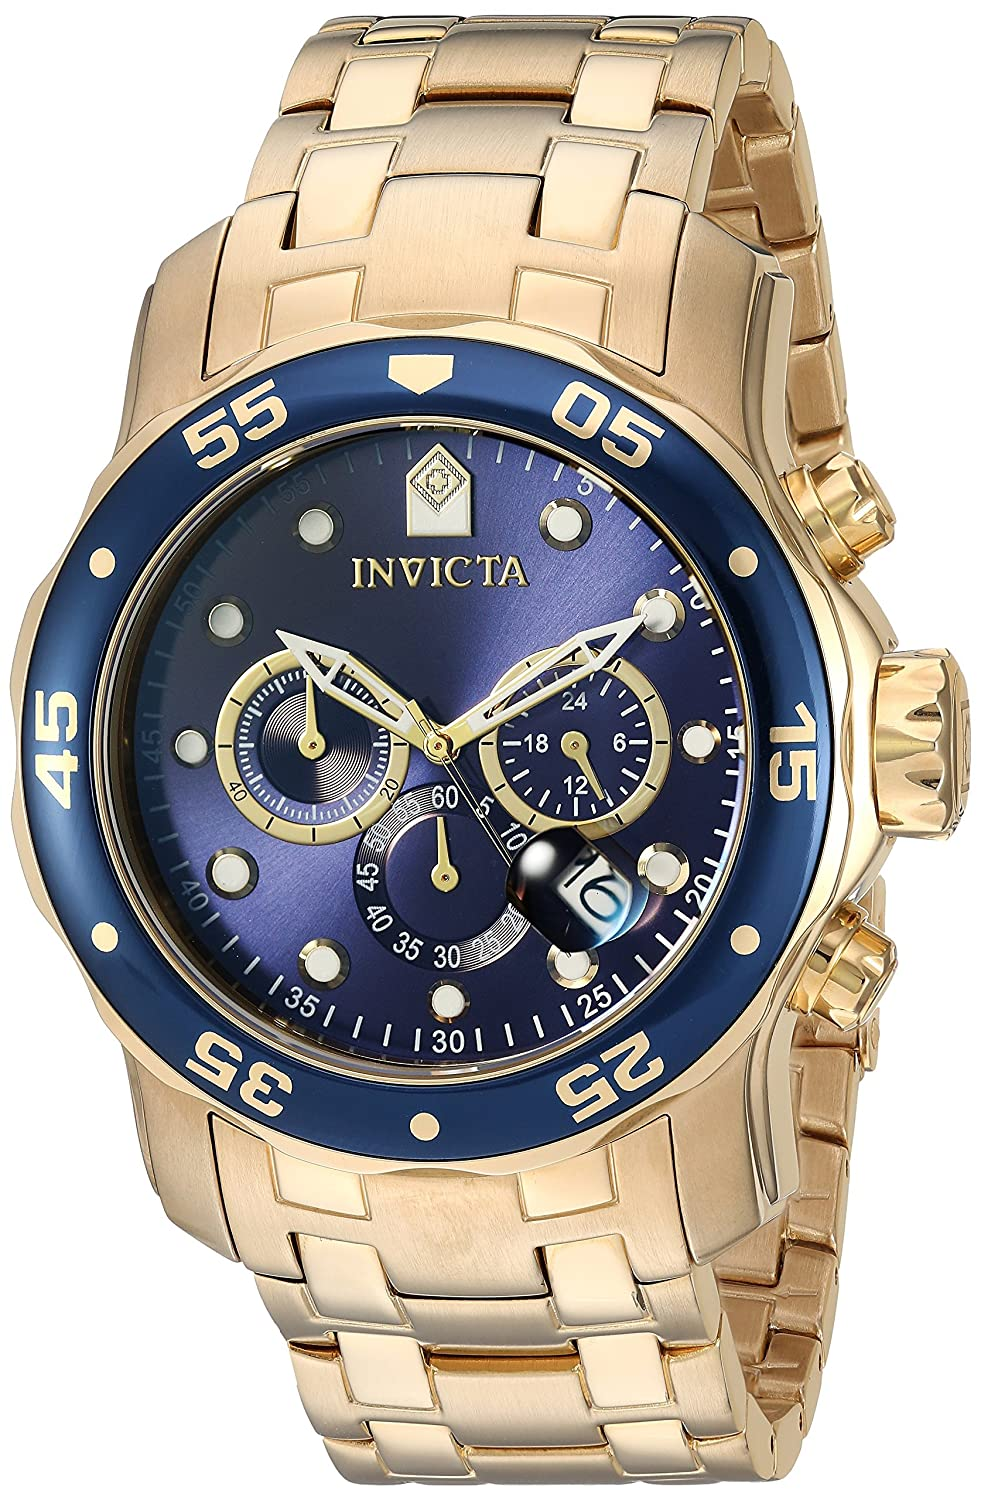 Amazon.com: Invicta Men's 0073 Pro Diver Collection Chronograph 18k  Gold-Plated Watch with Link Bracelet: Invicta: Watches